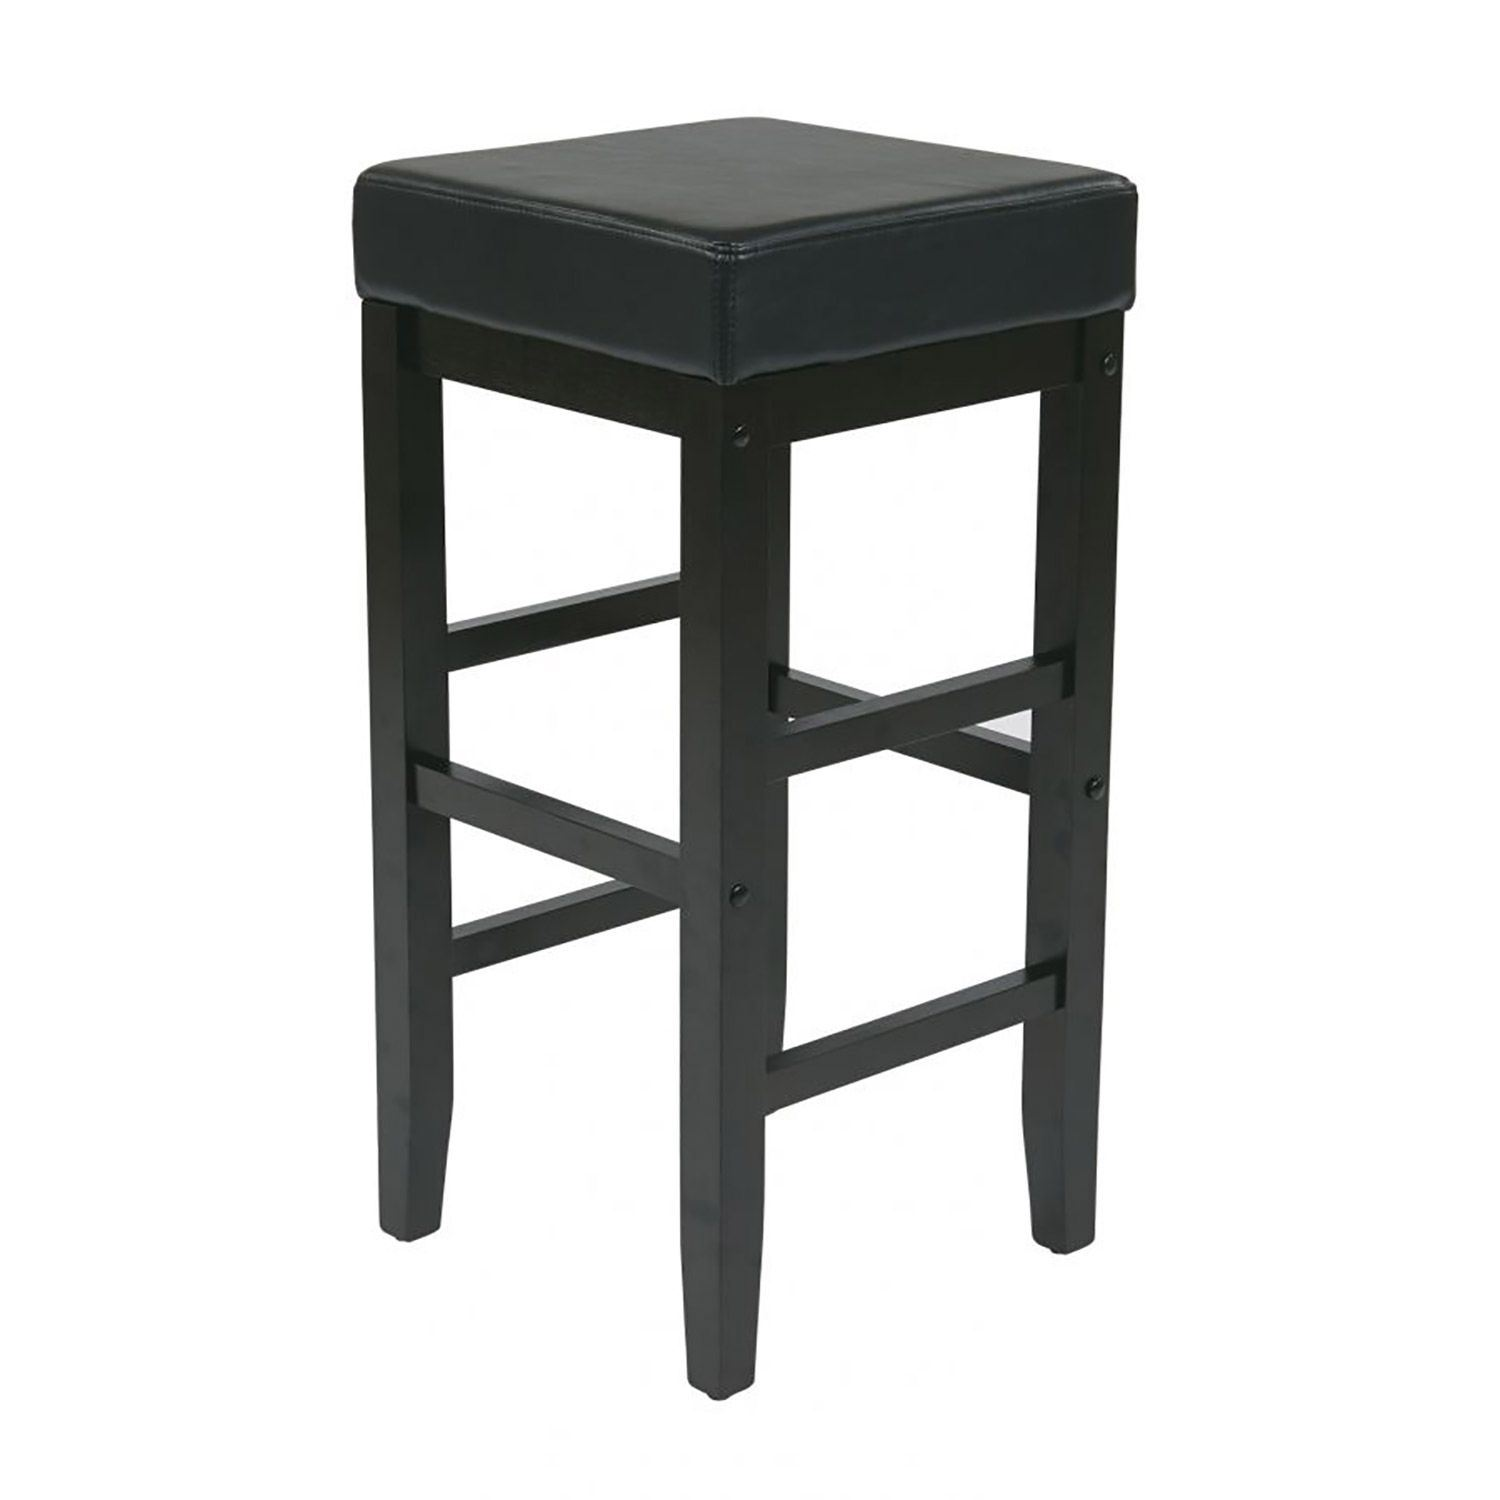 25in Square Black Faux Leather Barstool Es25vs3 Office